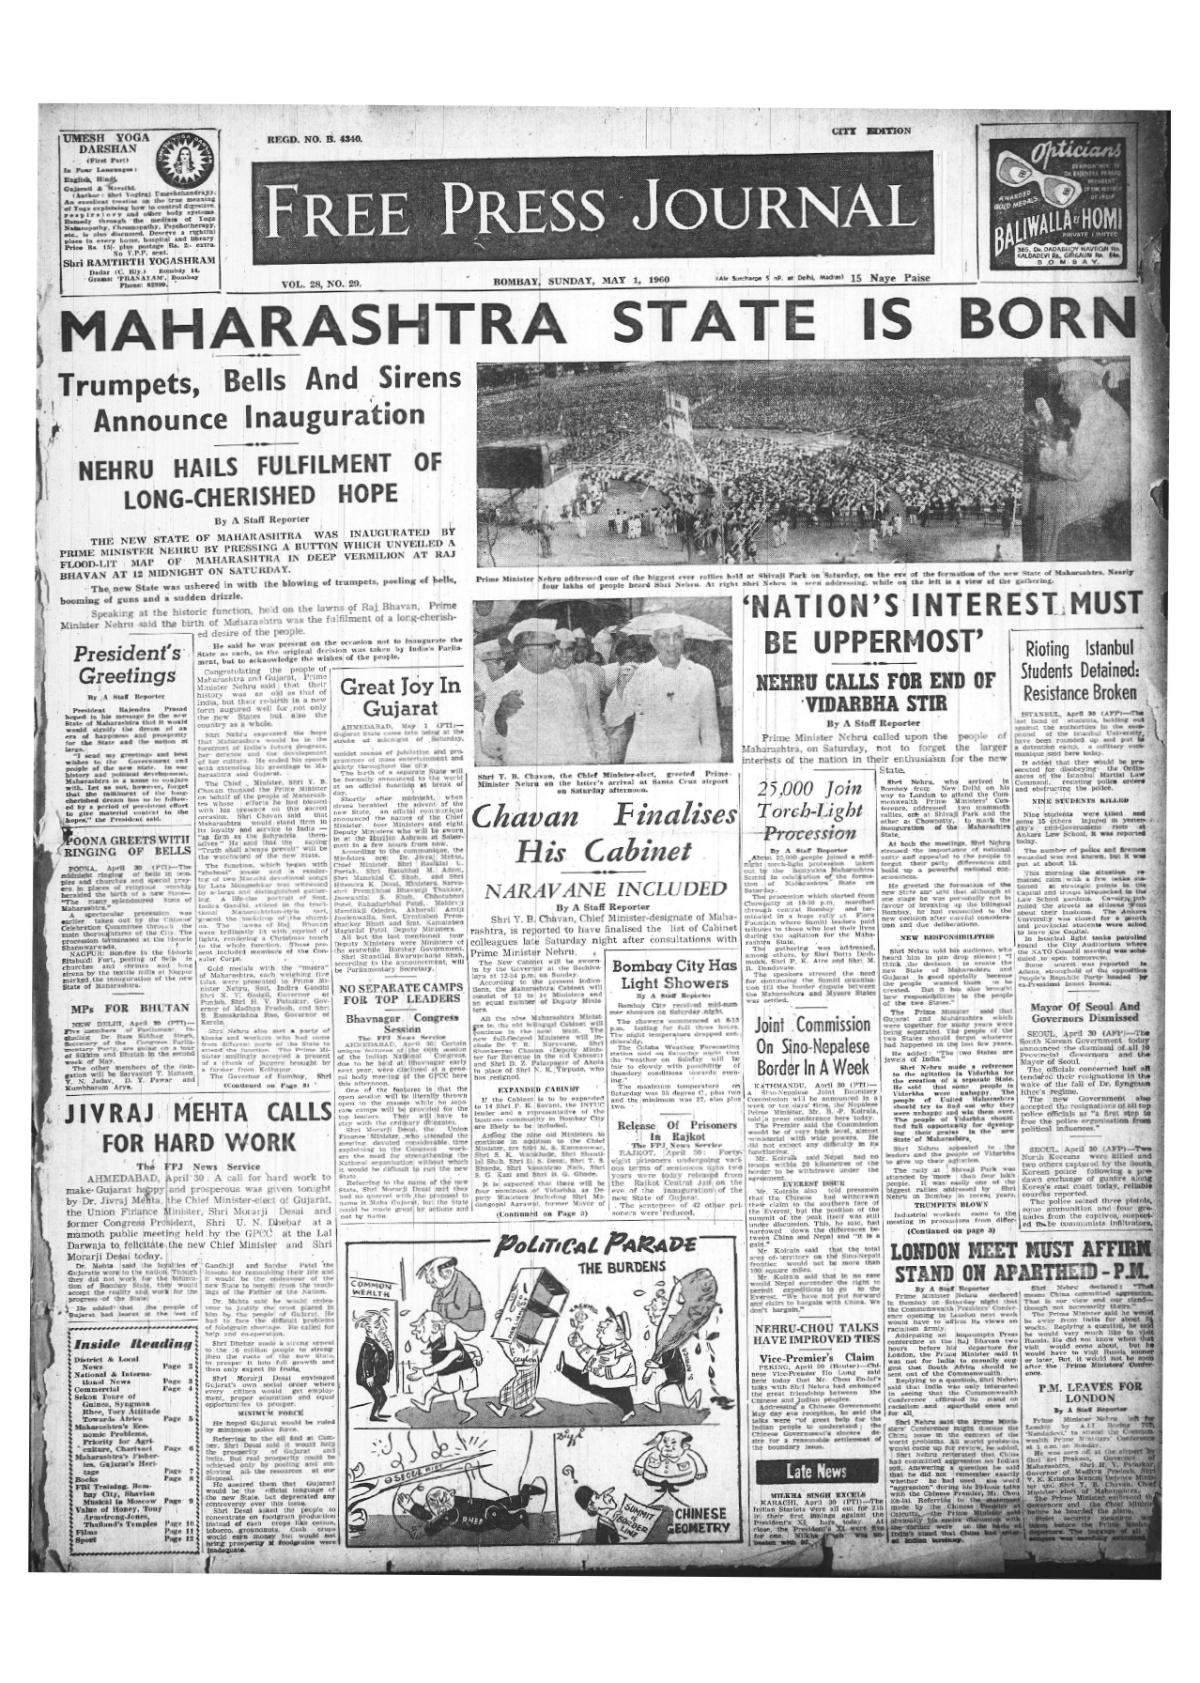 'Maharashtra is born': A look back at how FPJ covered formation of a new state on May 1, 1960